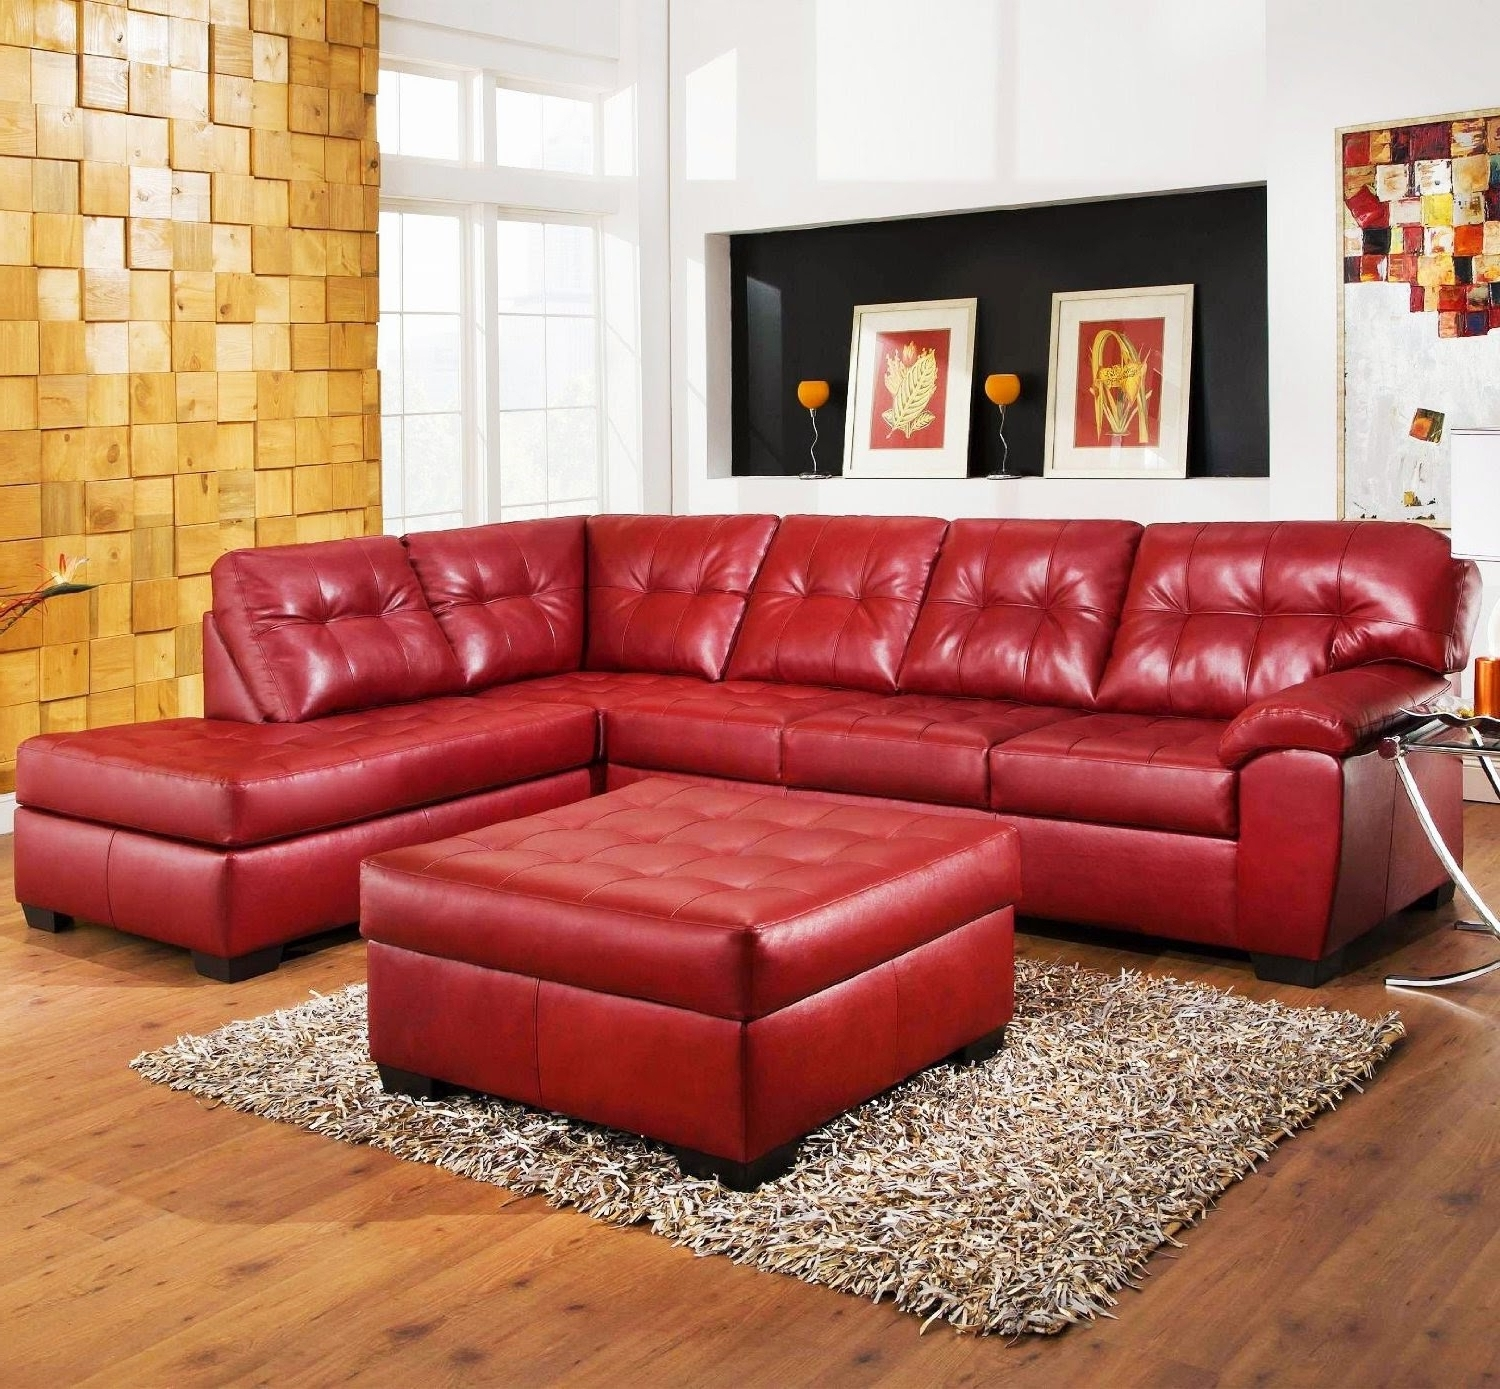 Well Known Sectional Sofas Rooms To Go – Home Design Ideas And Pictures Throughout Sectional Sofas At Rooms To Go (View 15 of 15)